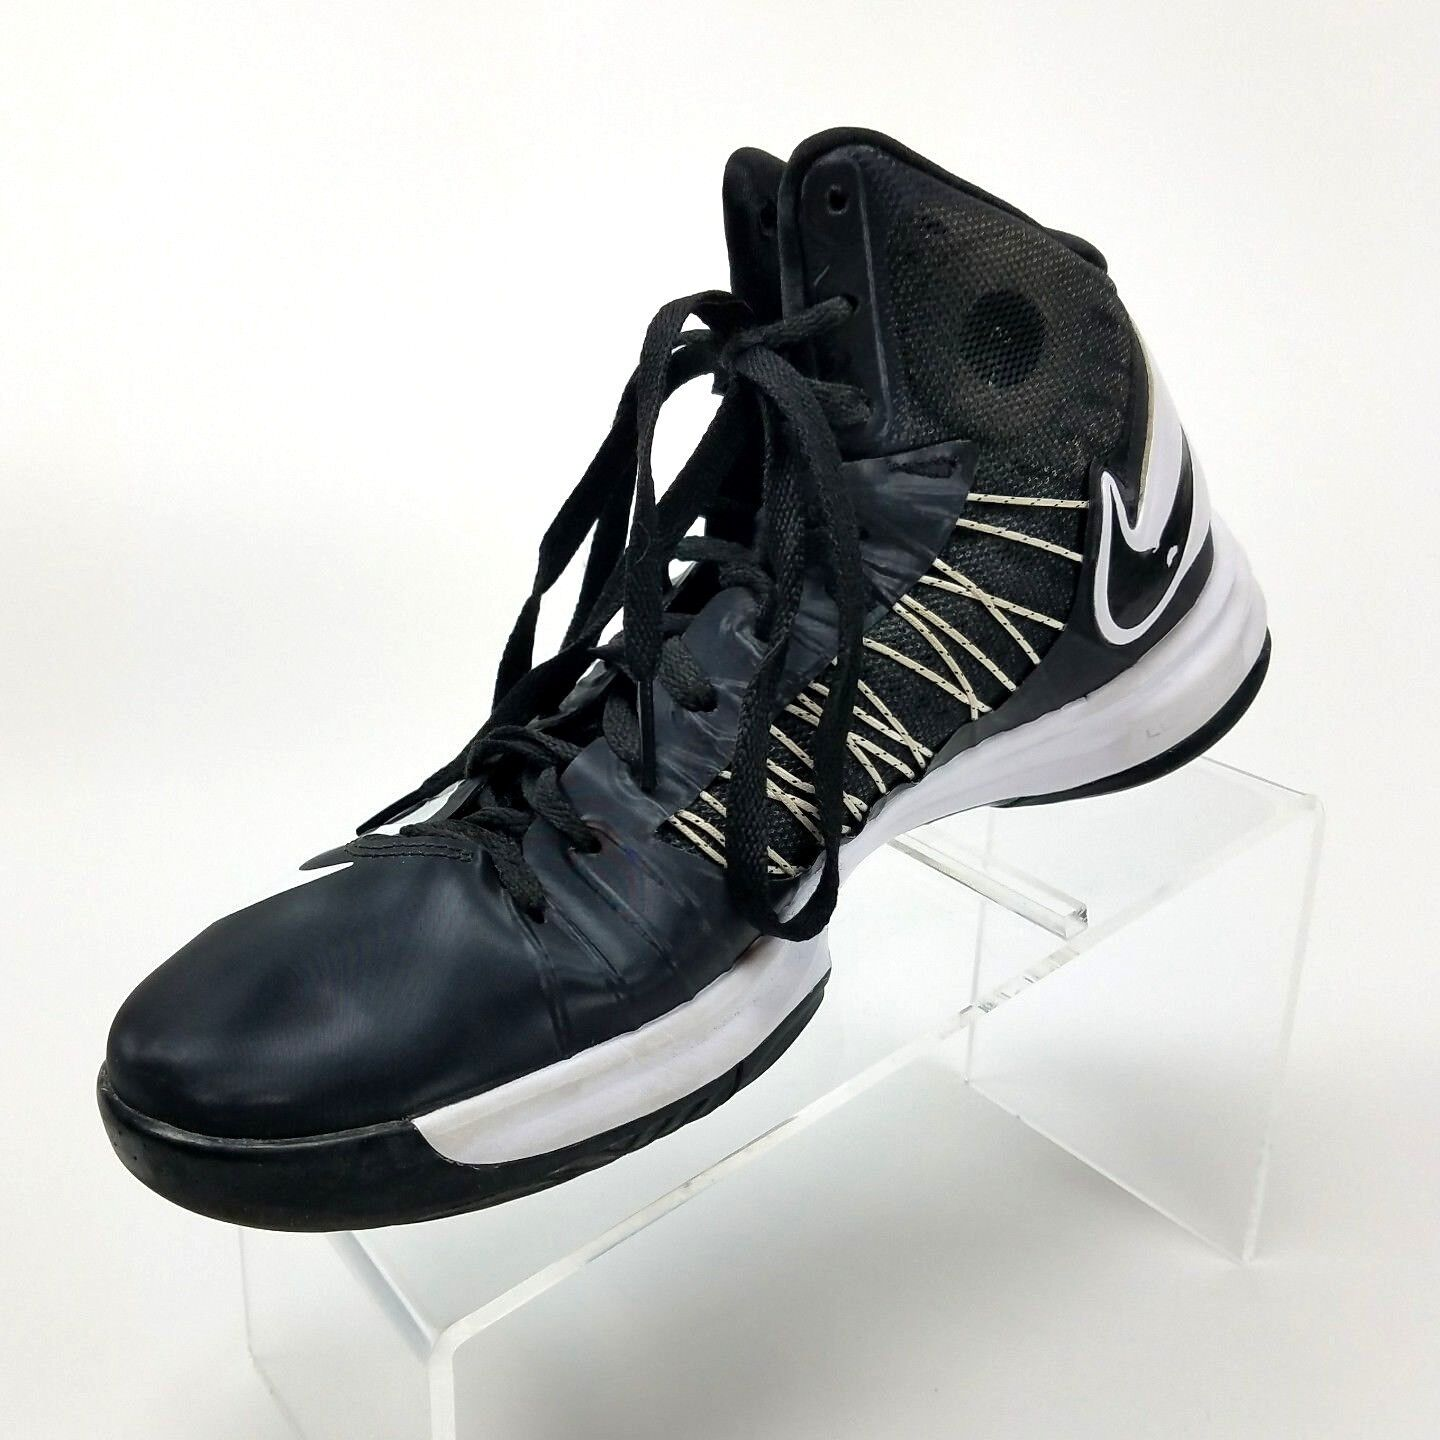 san francisco 2d1c4 36534 ... NIKE HYPERDUNK HYPERDUNK HYPERDUNK TB 524875 400 MIDNIGHT NAVY BLUE  WOMEN SHOES US 9.5 07a4ae ...